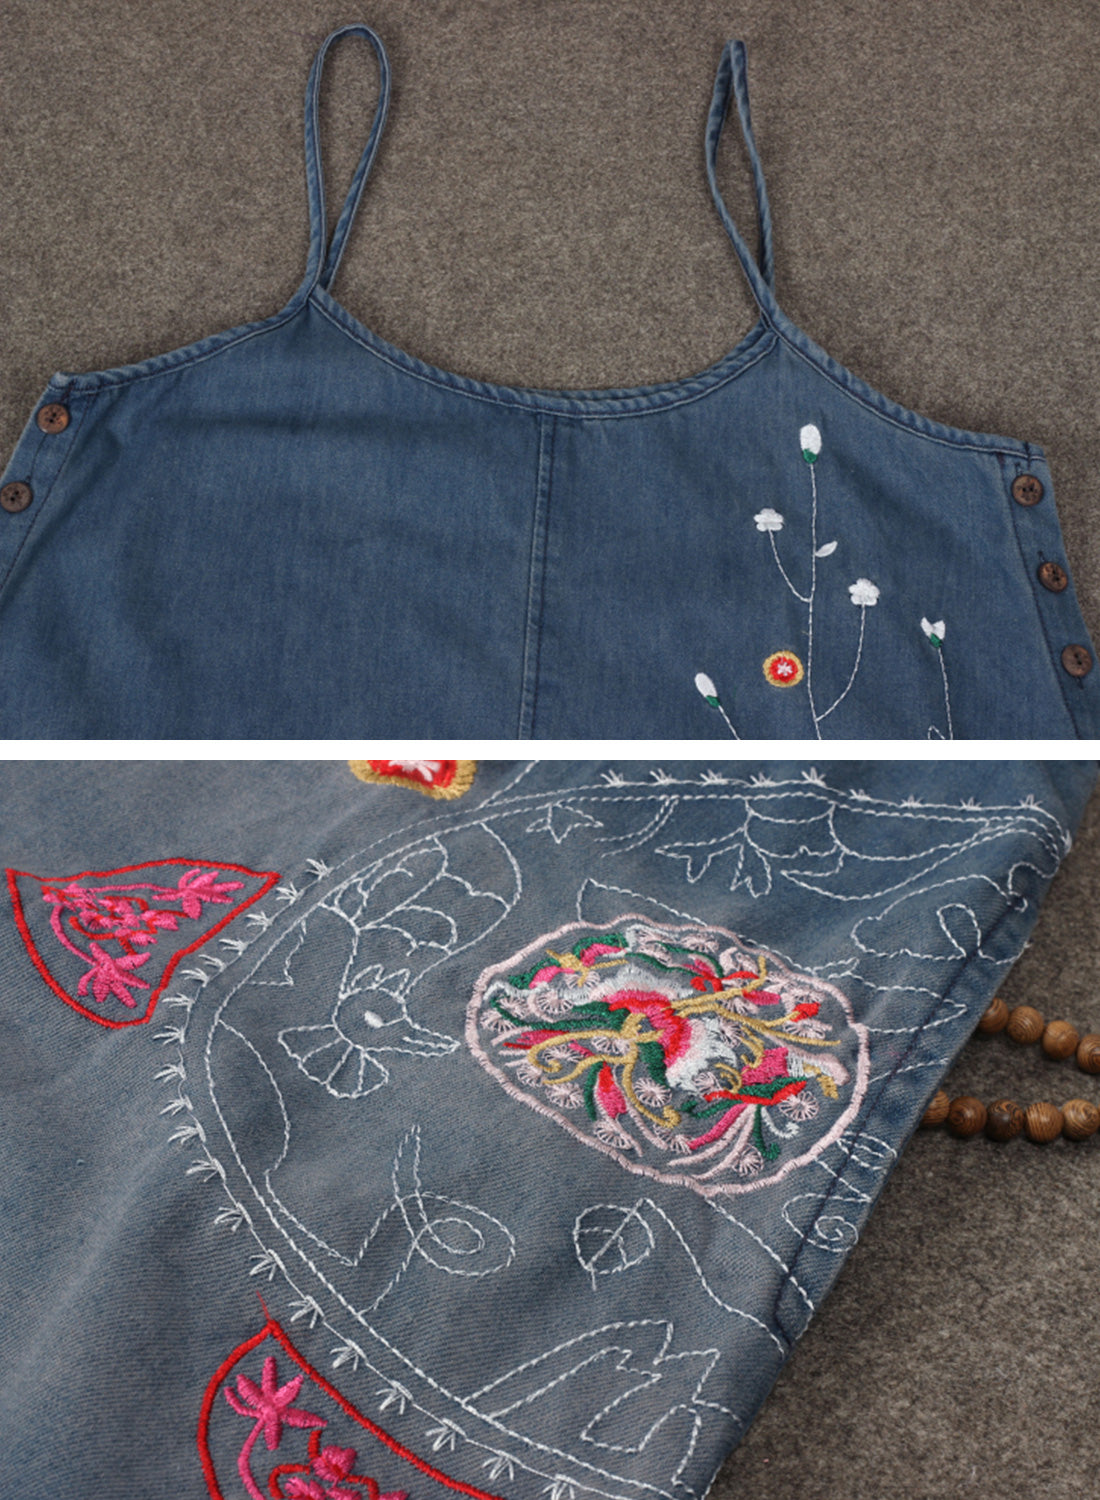 She's So Fancy Cotton Denim Overalls Dungarees Details 1